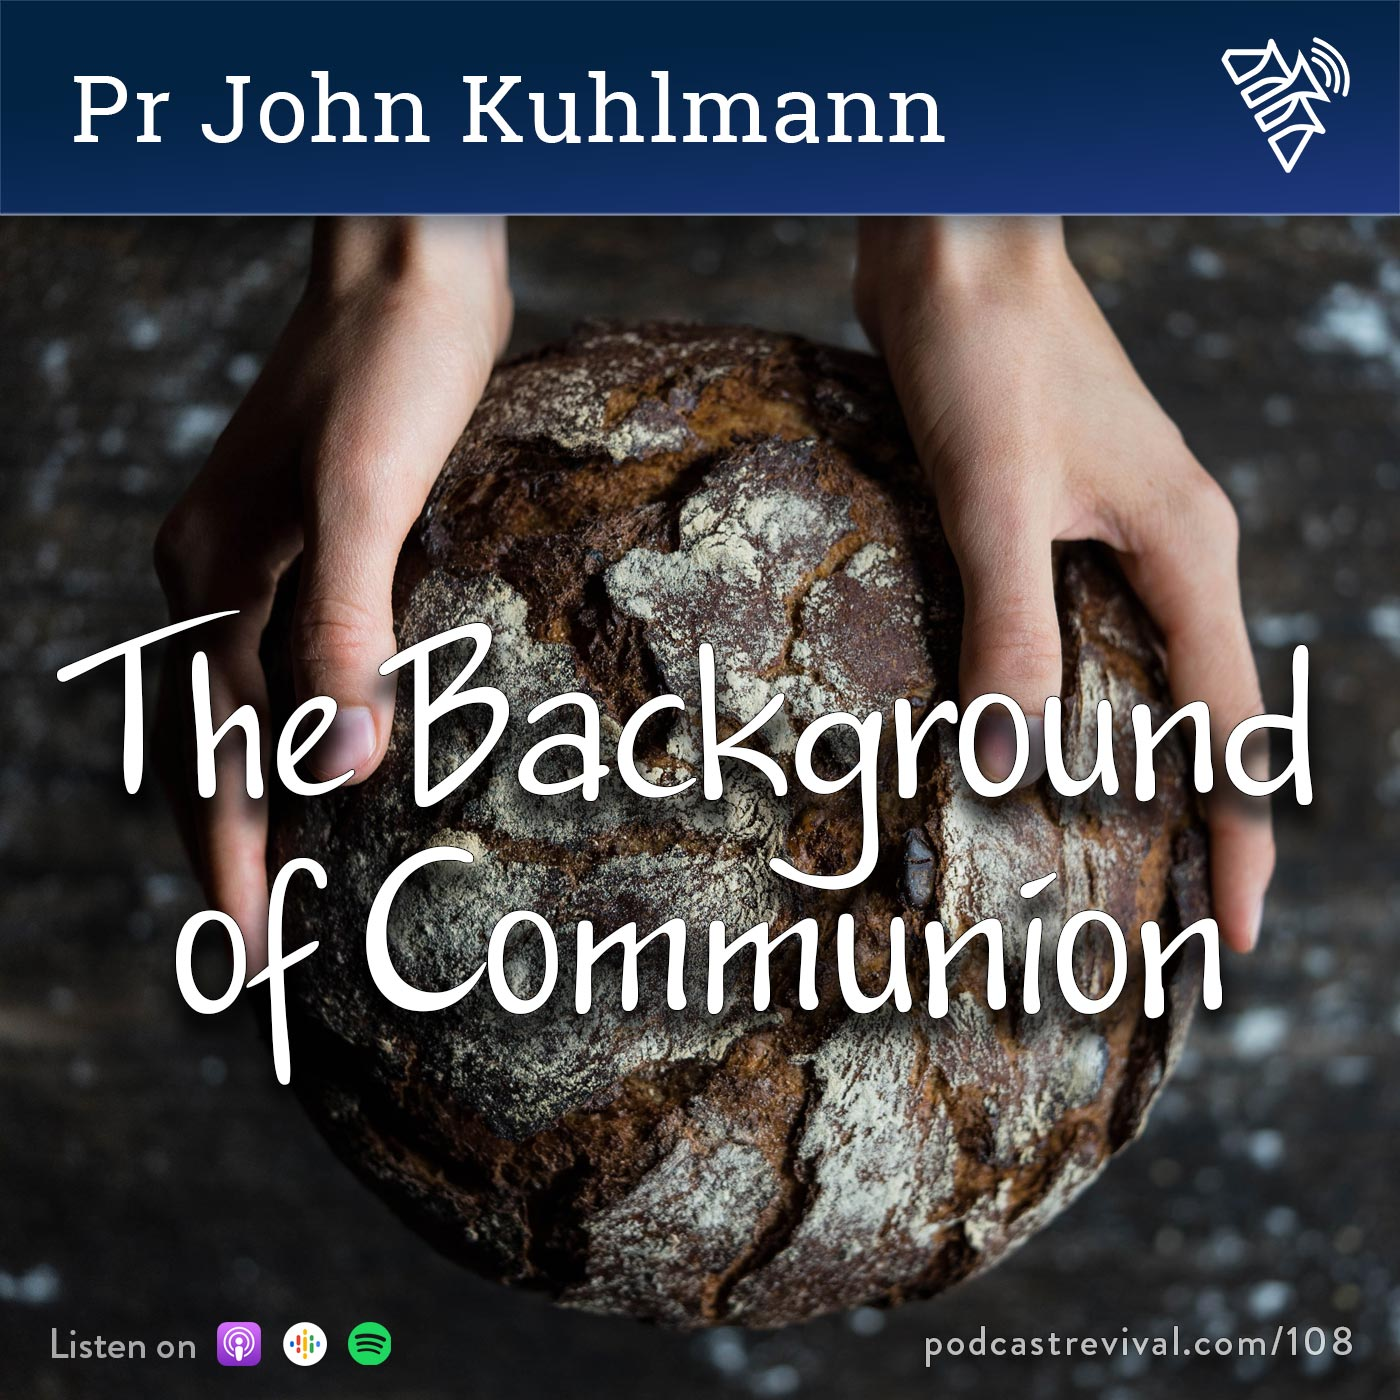 The background of Communion